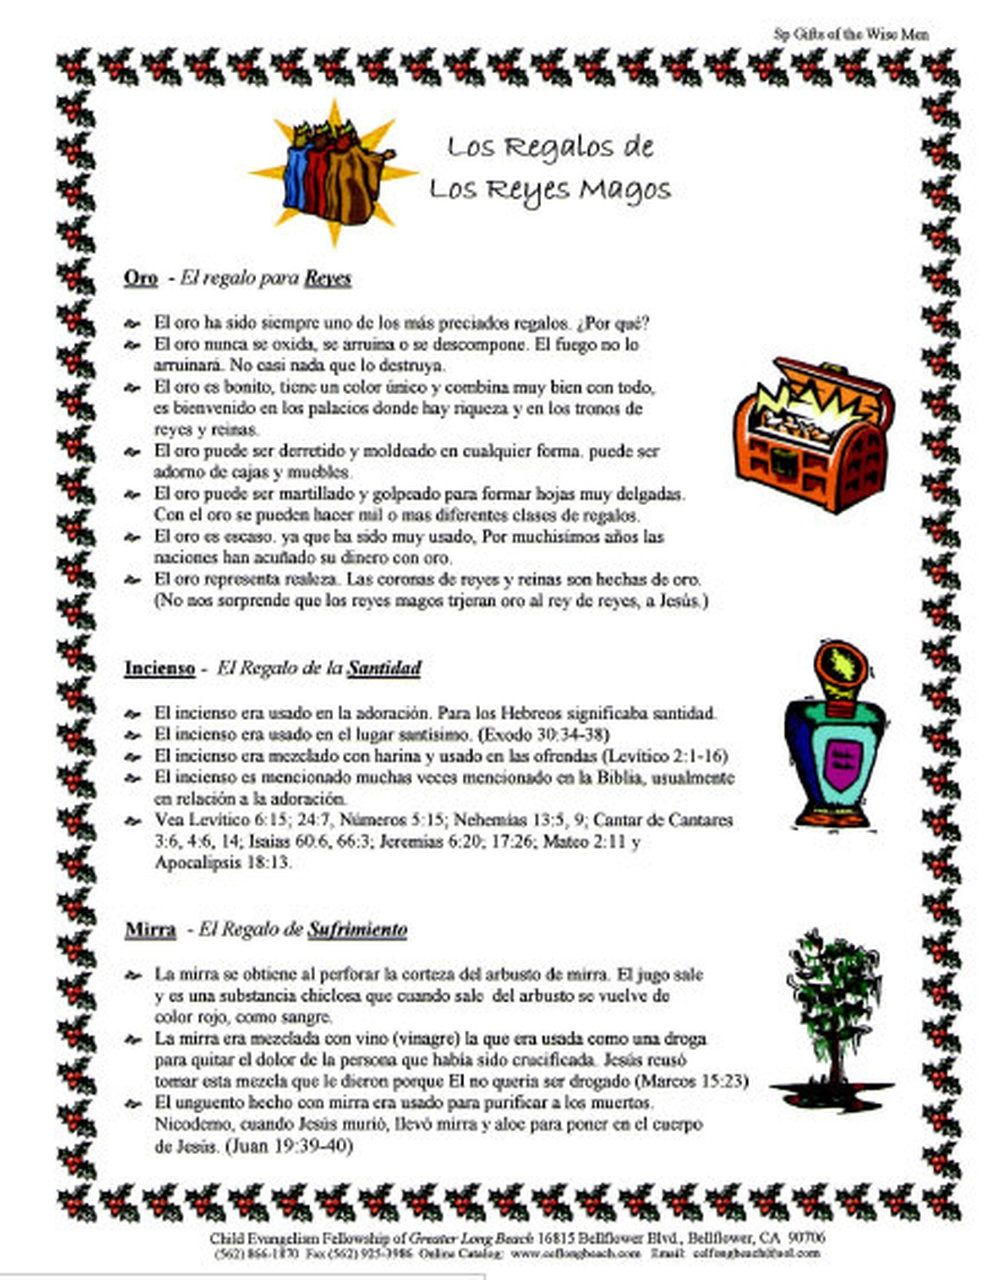 Los Regalos De Los Reyes Magos Gifts Of The Wisemen Los Reyes Magos Christmas Decorations Reyes Magos